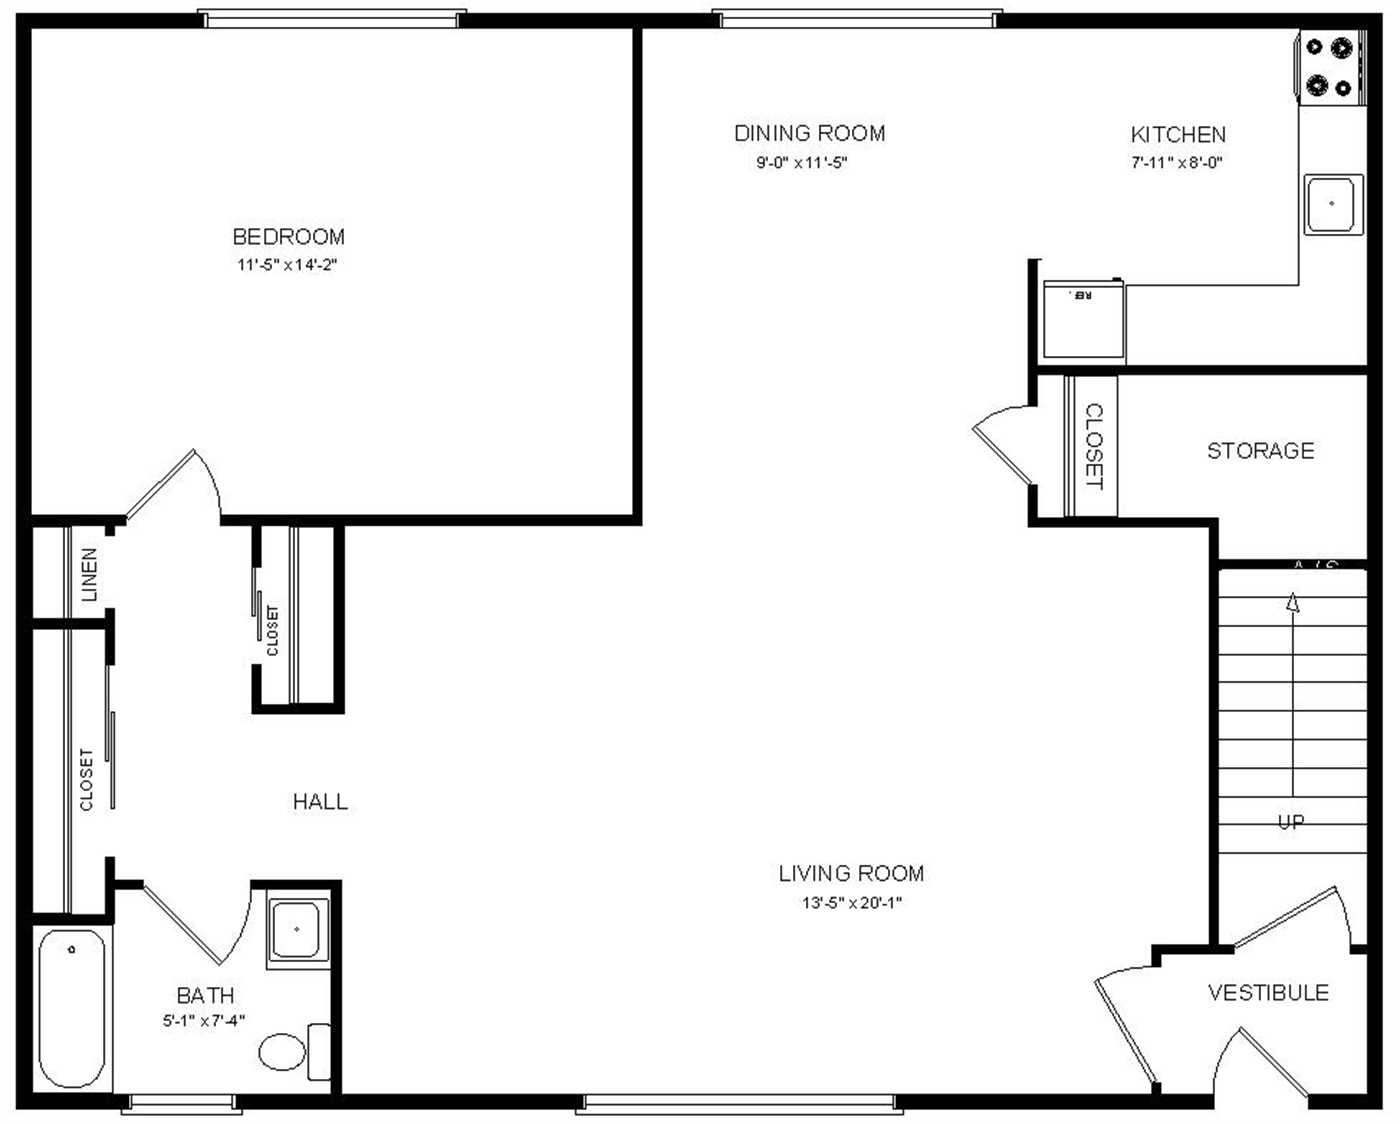 Diy printable floor plan templates plans free for Floor plan blueprints free